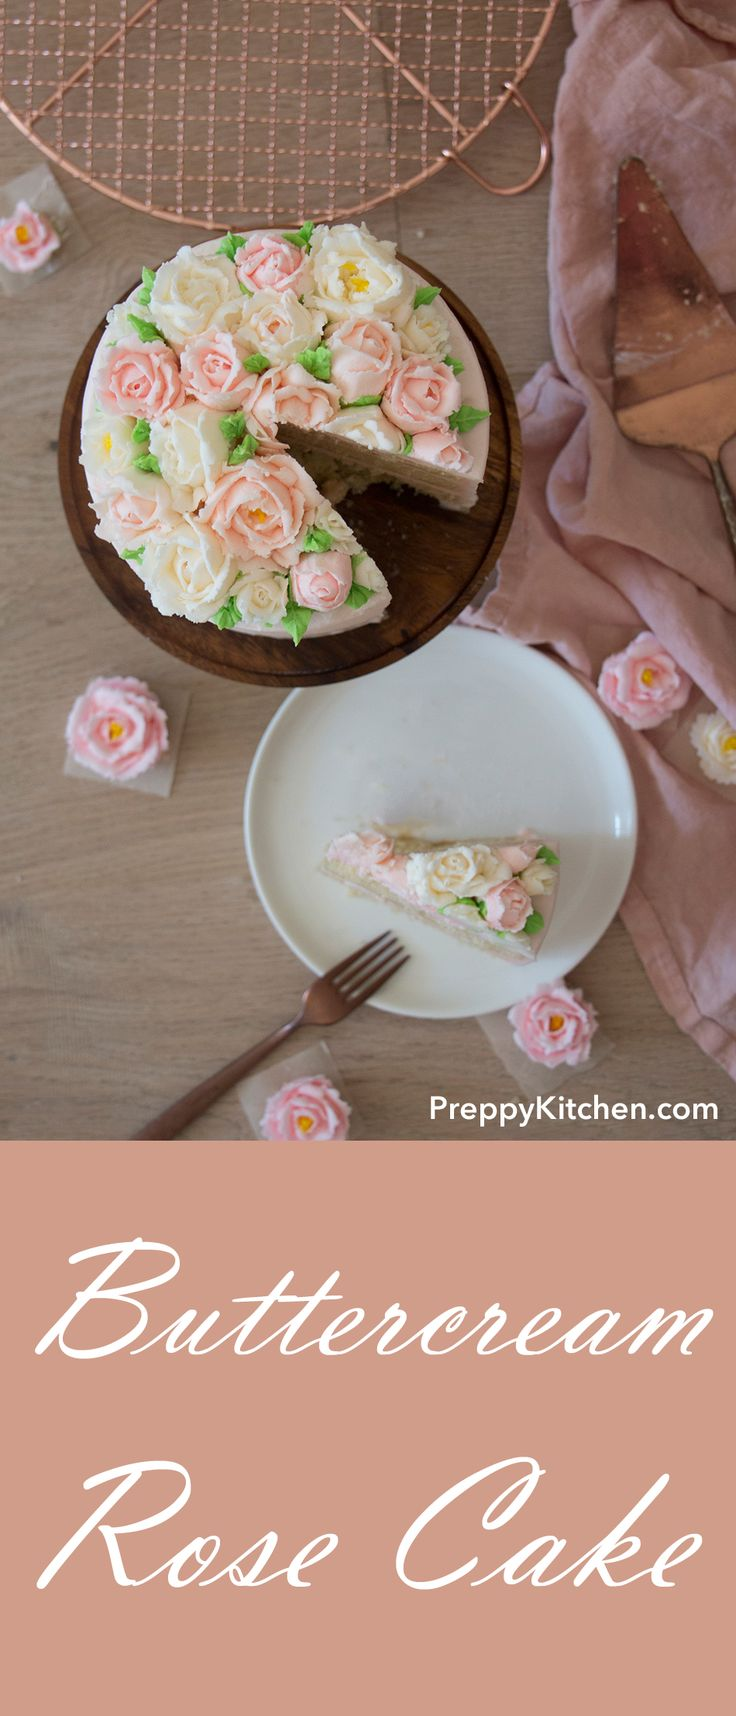 Easy buttercream rose cake make with simple ingredients. Make it for a birthday party or any occasion. I will show you easy it is to make those roses